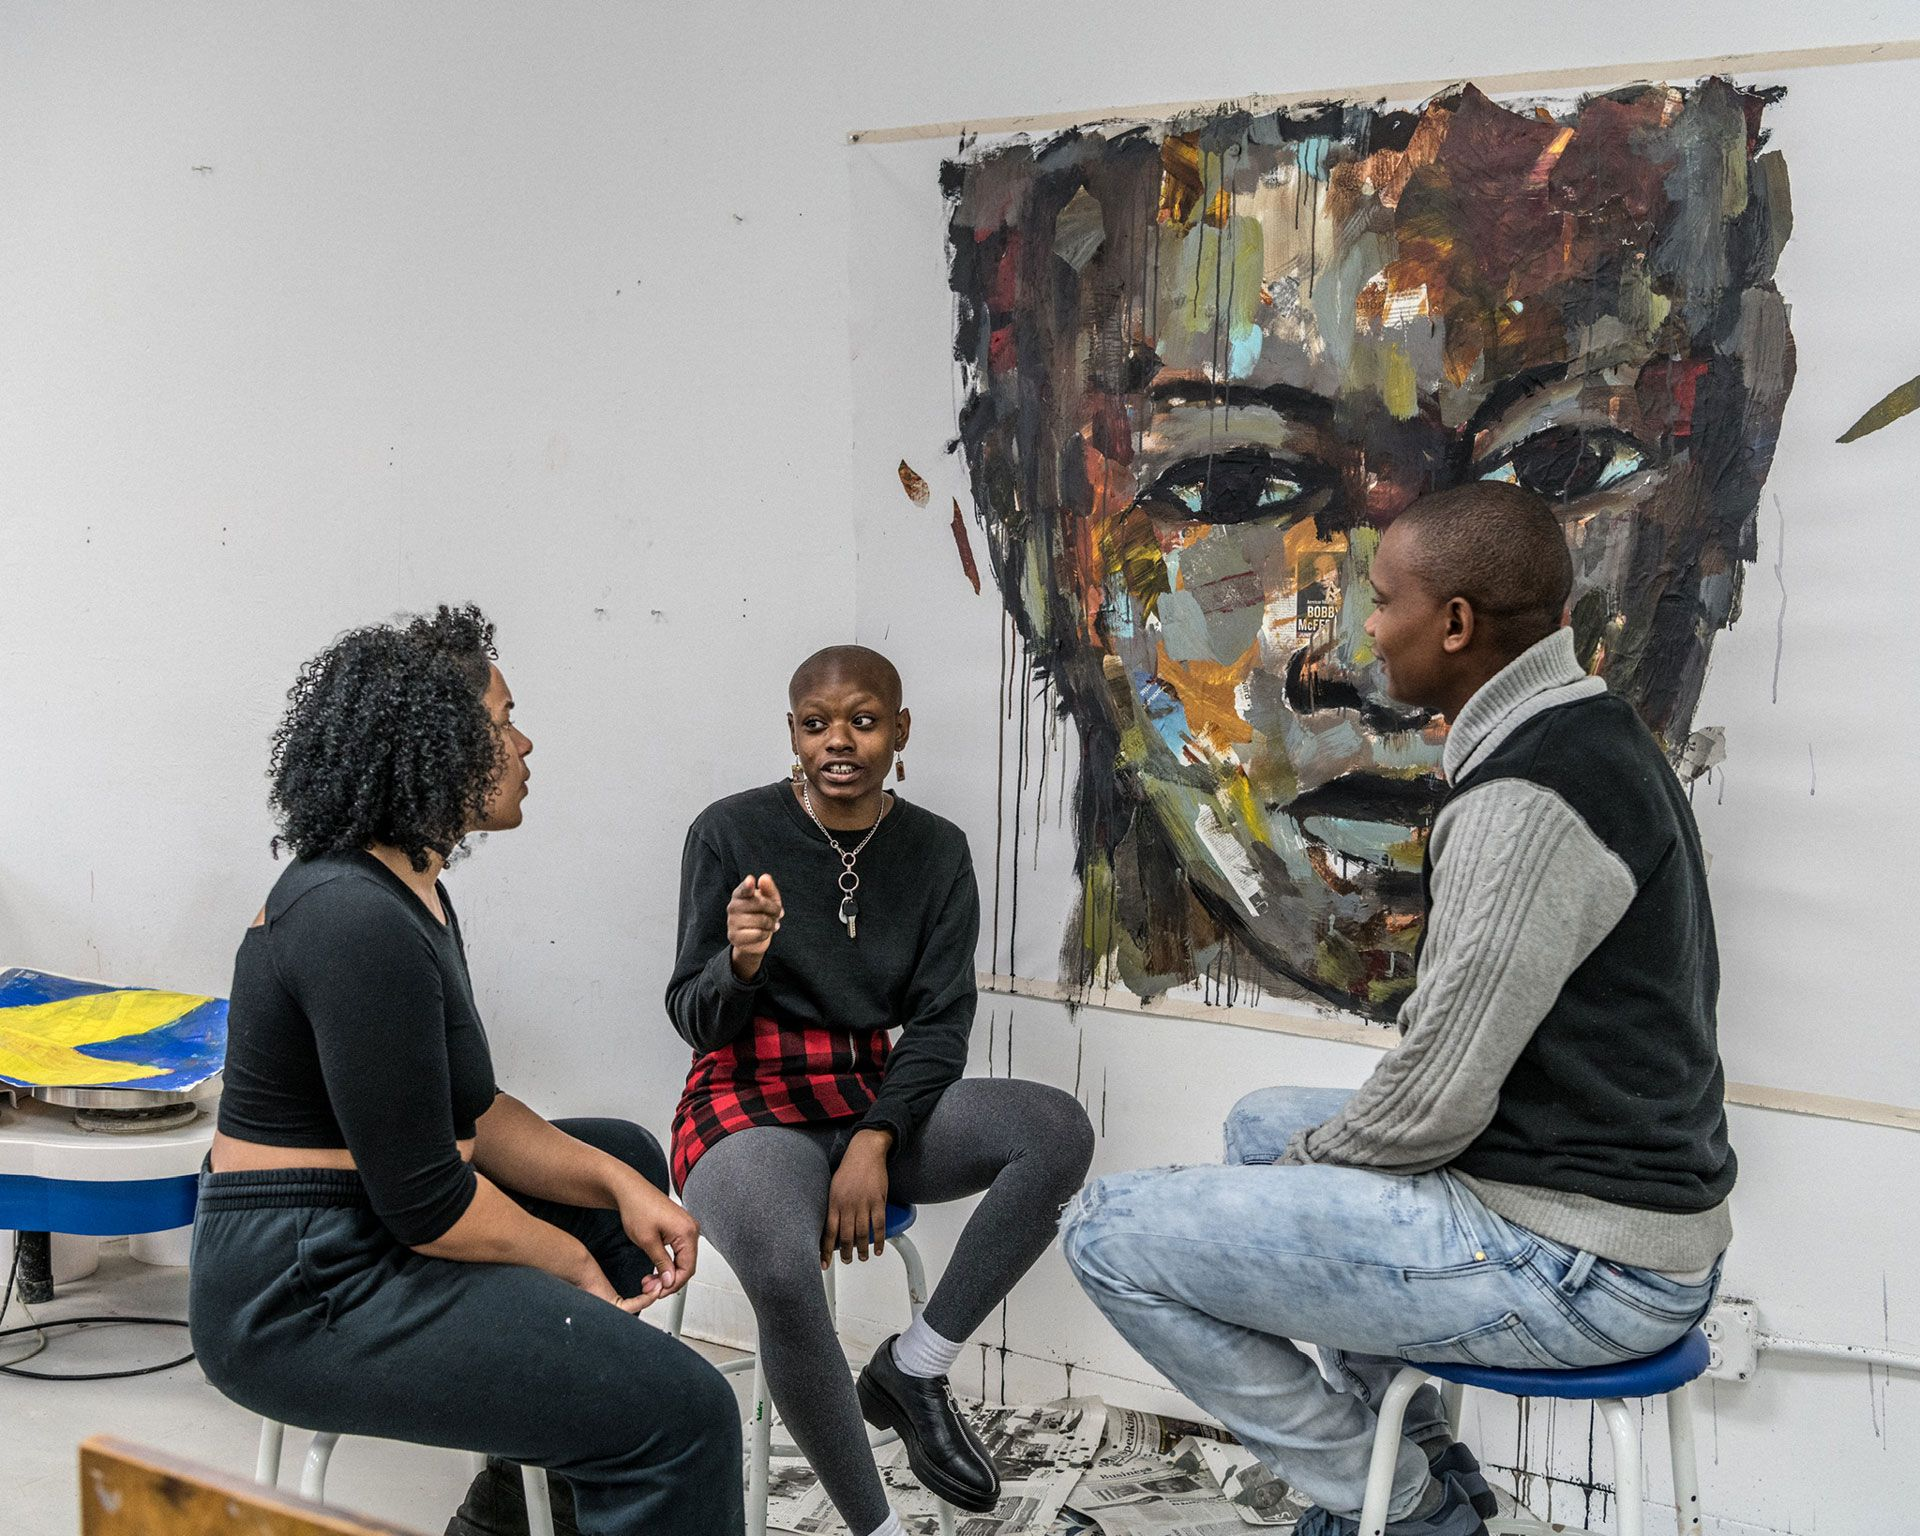 3 people sitting and having a conversation in front of a large portrait painting